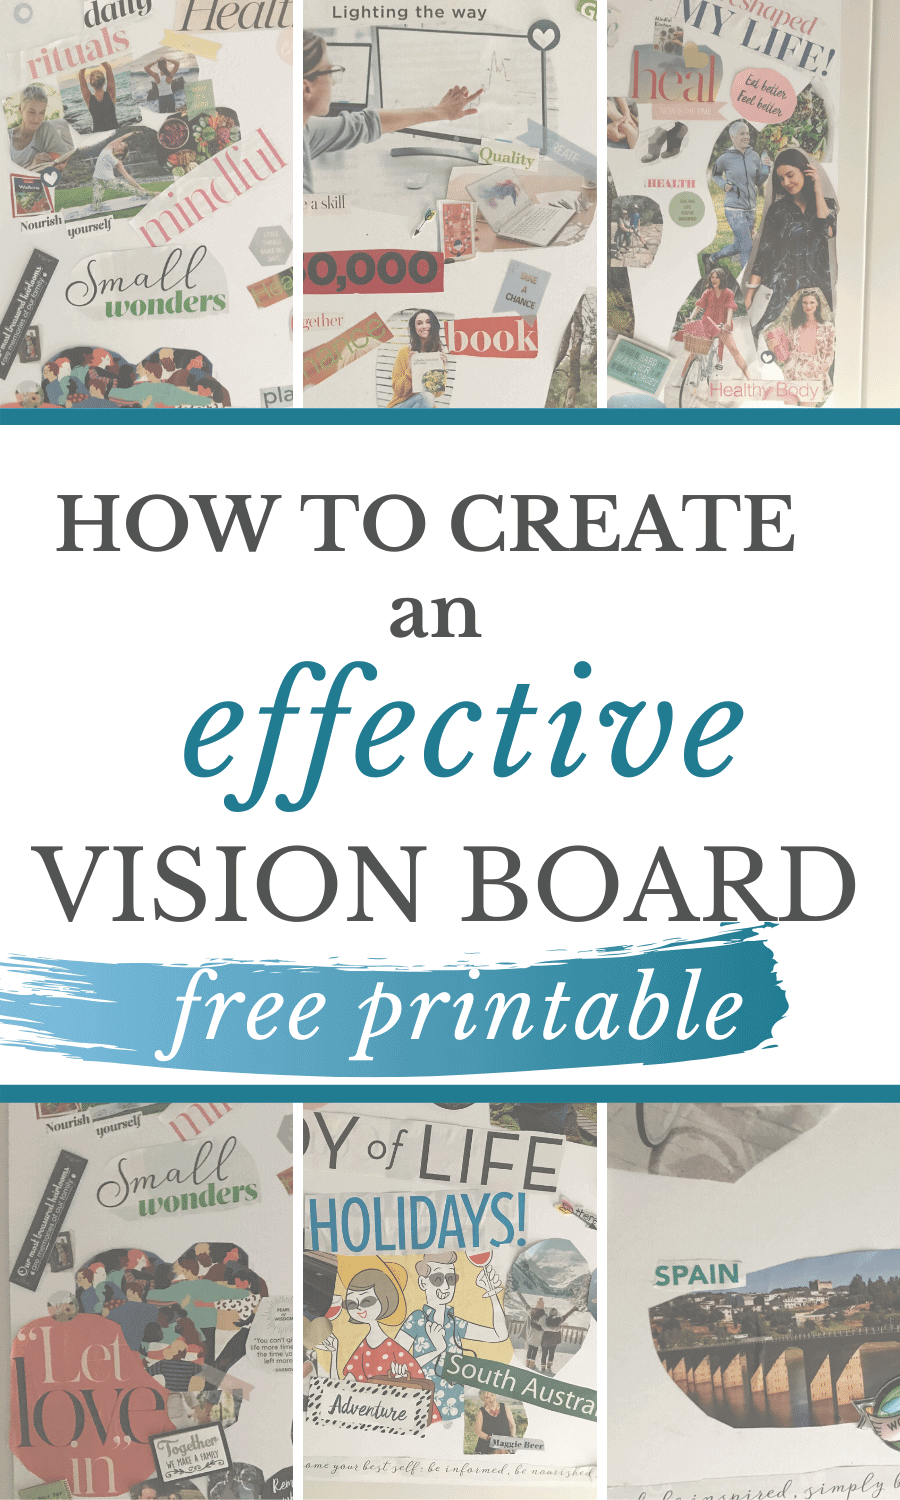 The latest post is on how to create a powerful vision